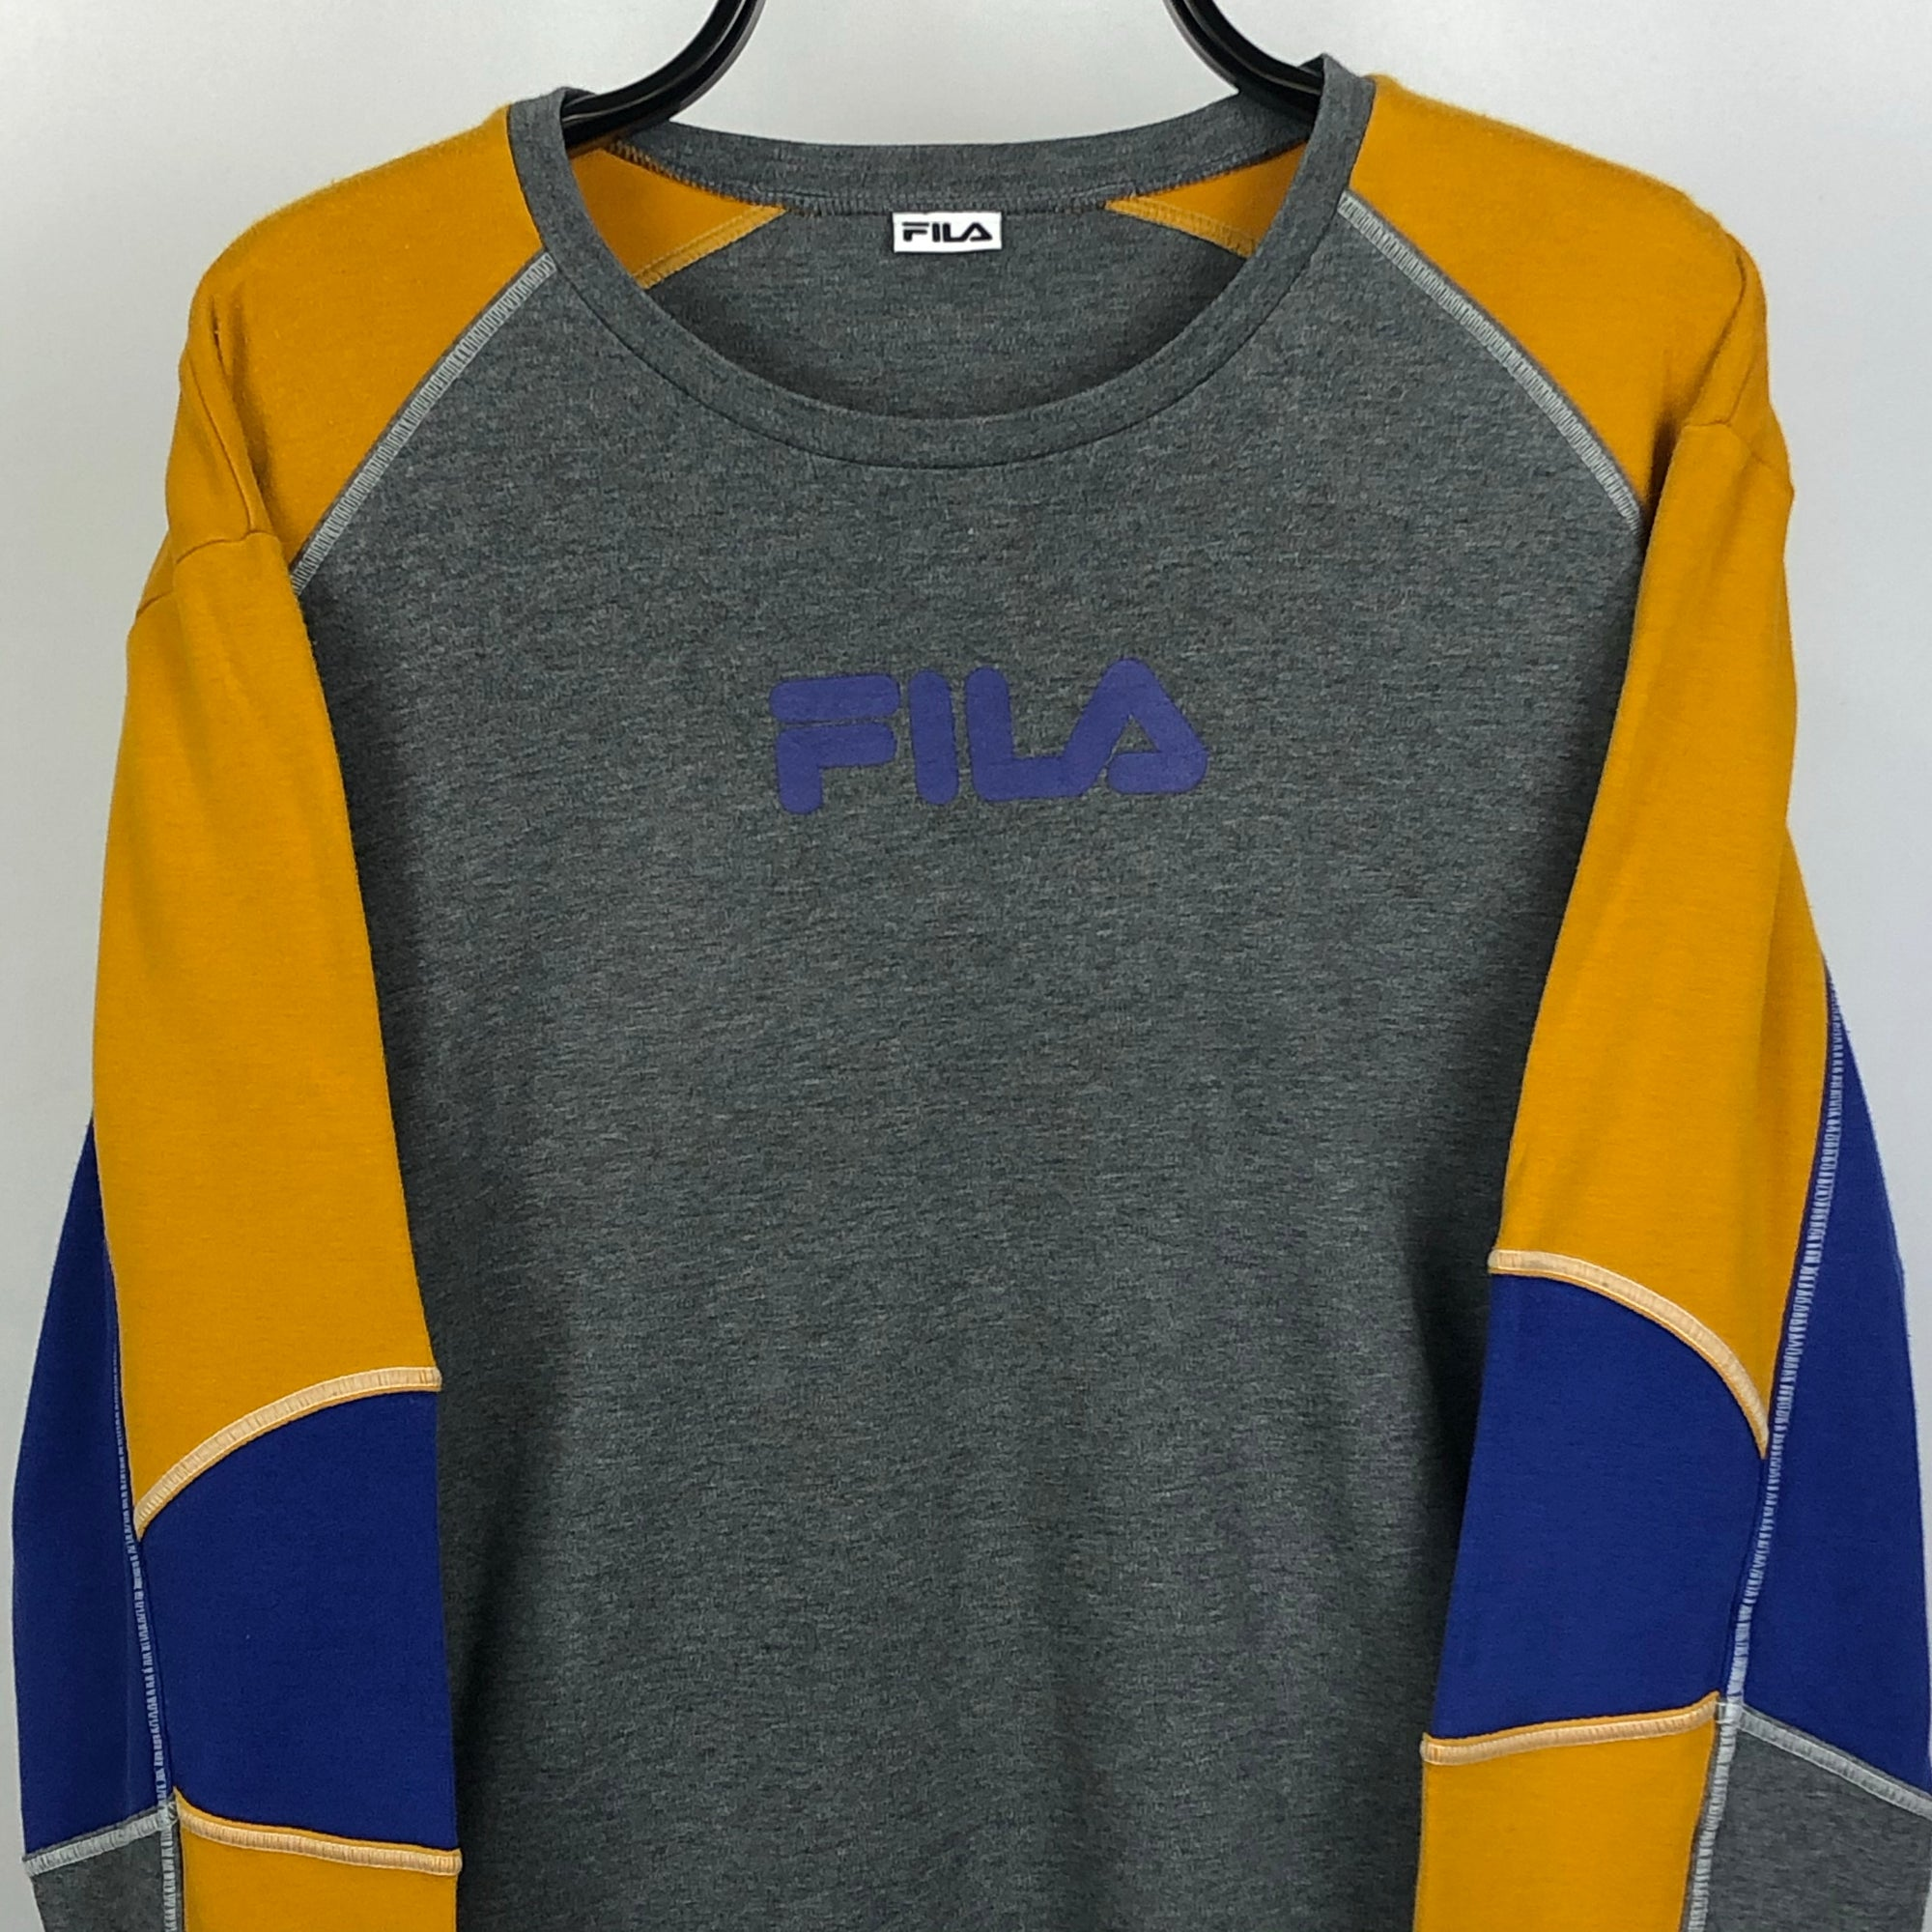 Vintage Fila Long Sleeved Tee - Men's Large/Women's XL